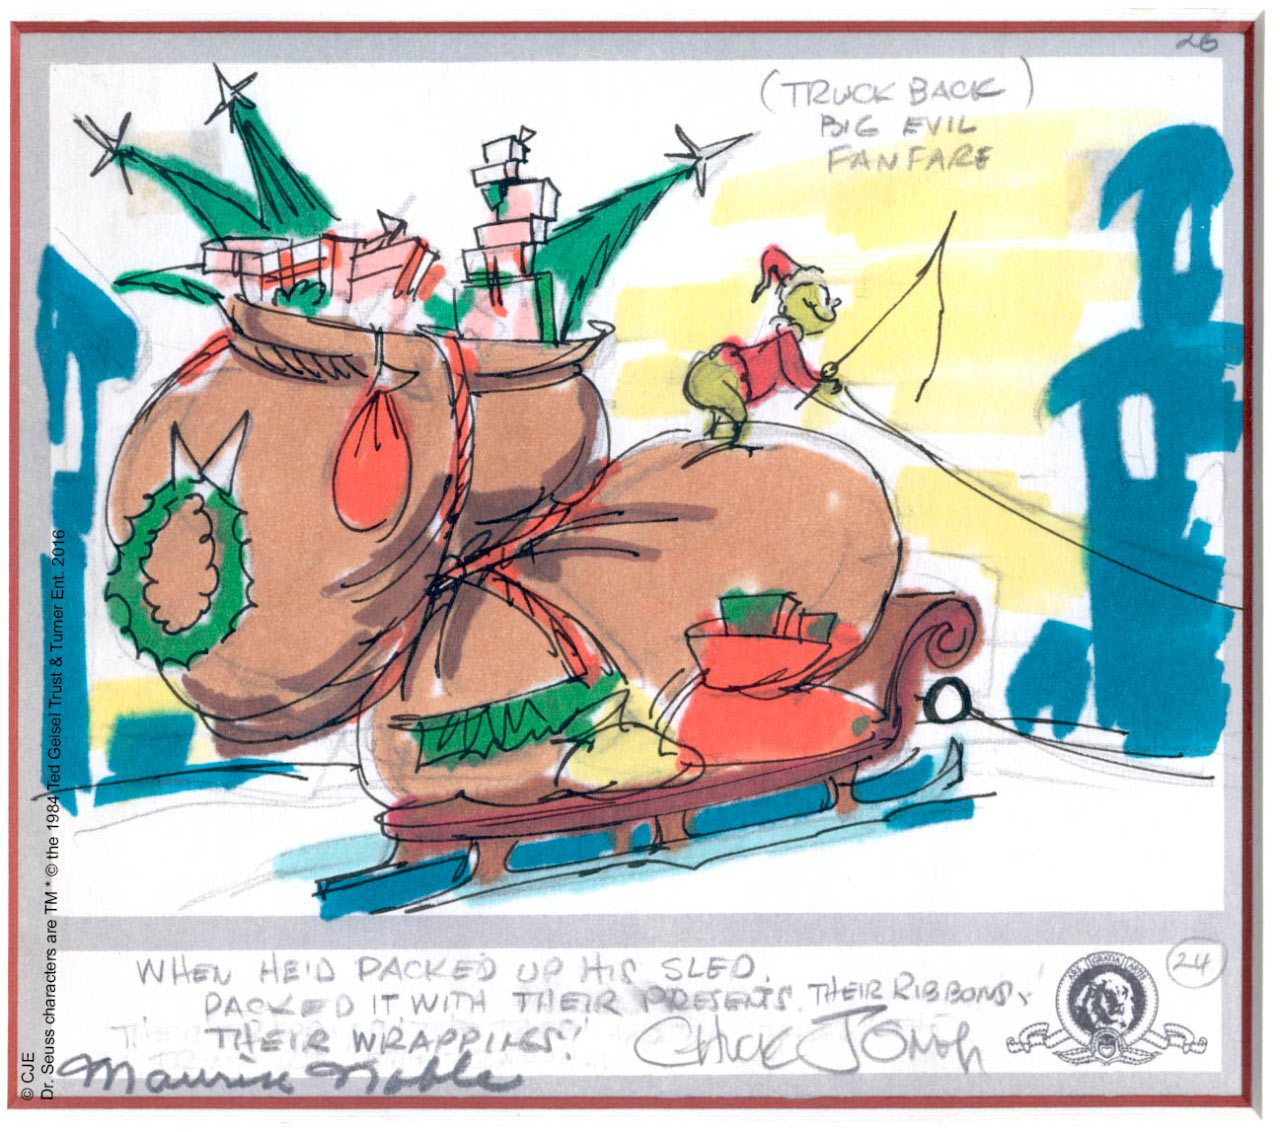 Story drawing by Chuck Jones.